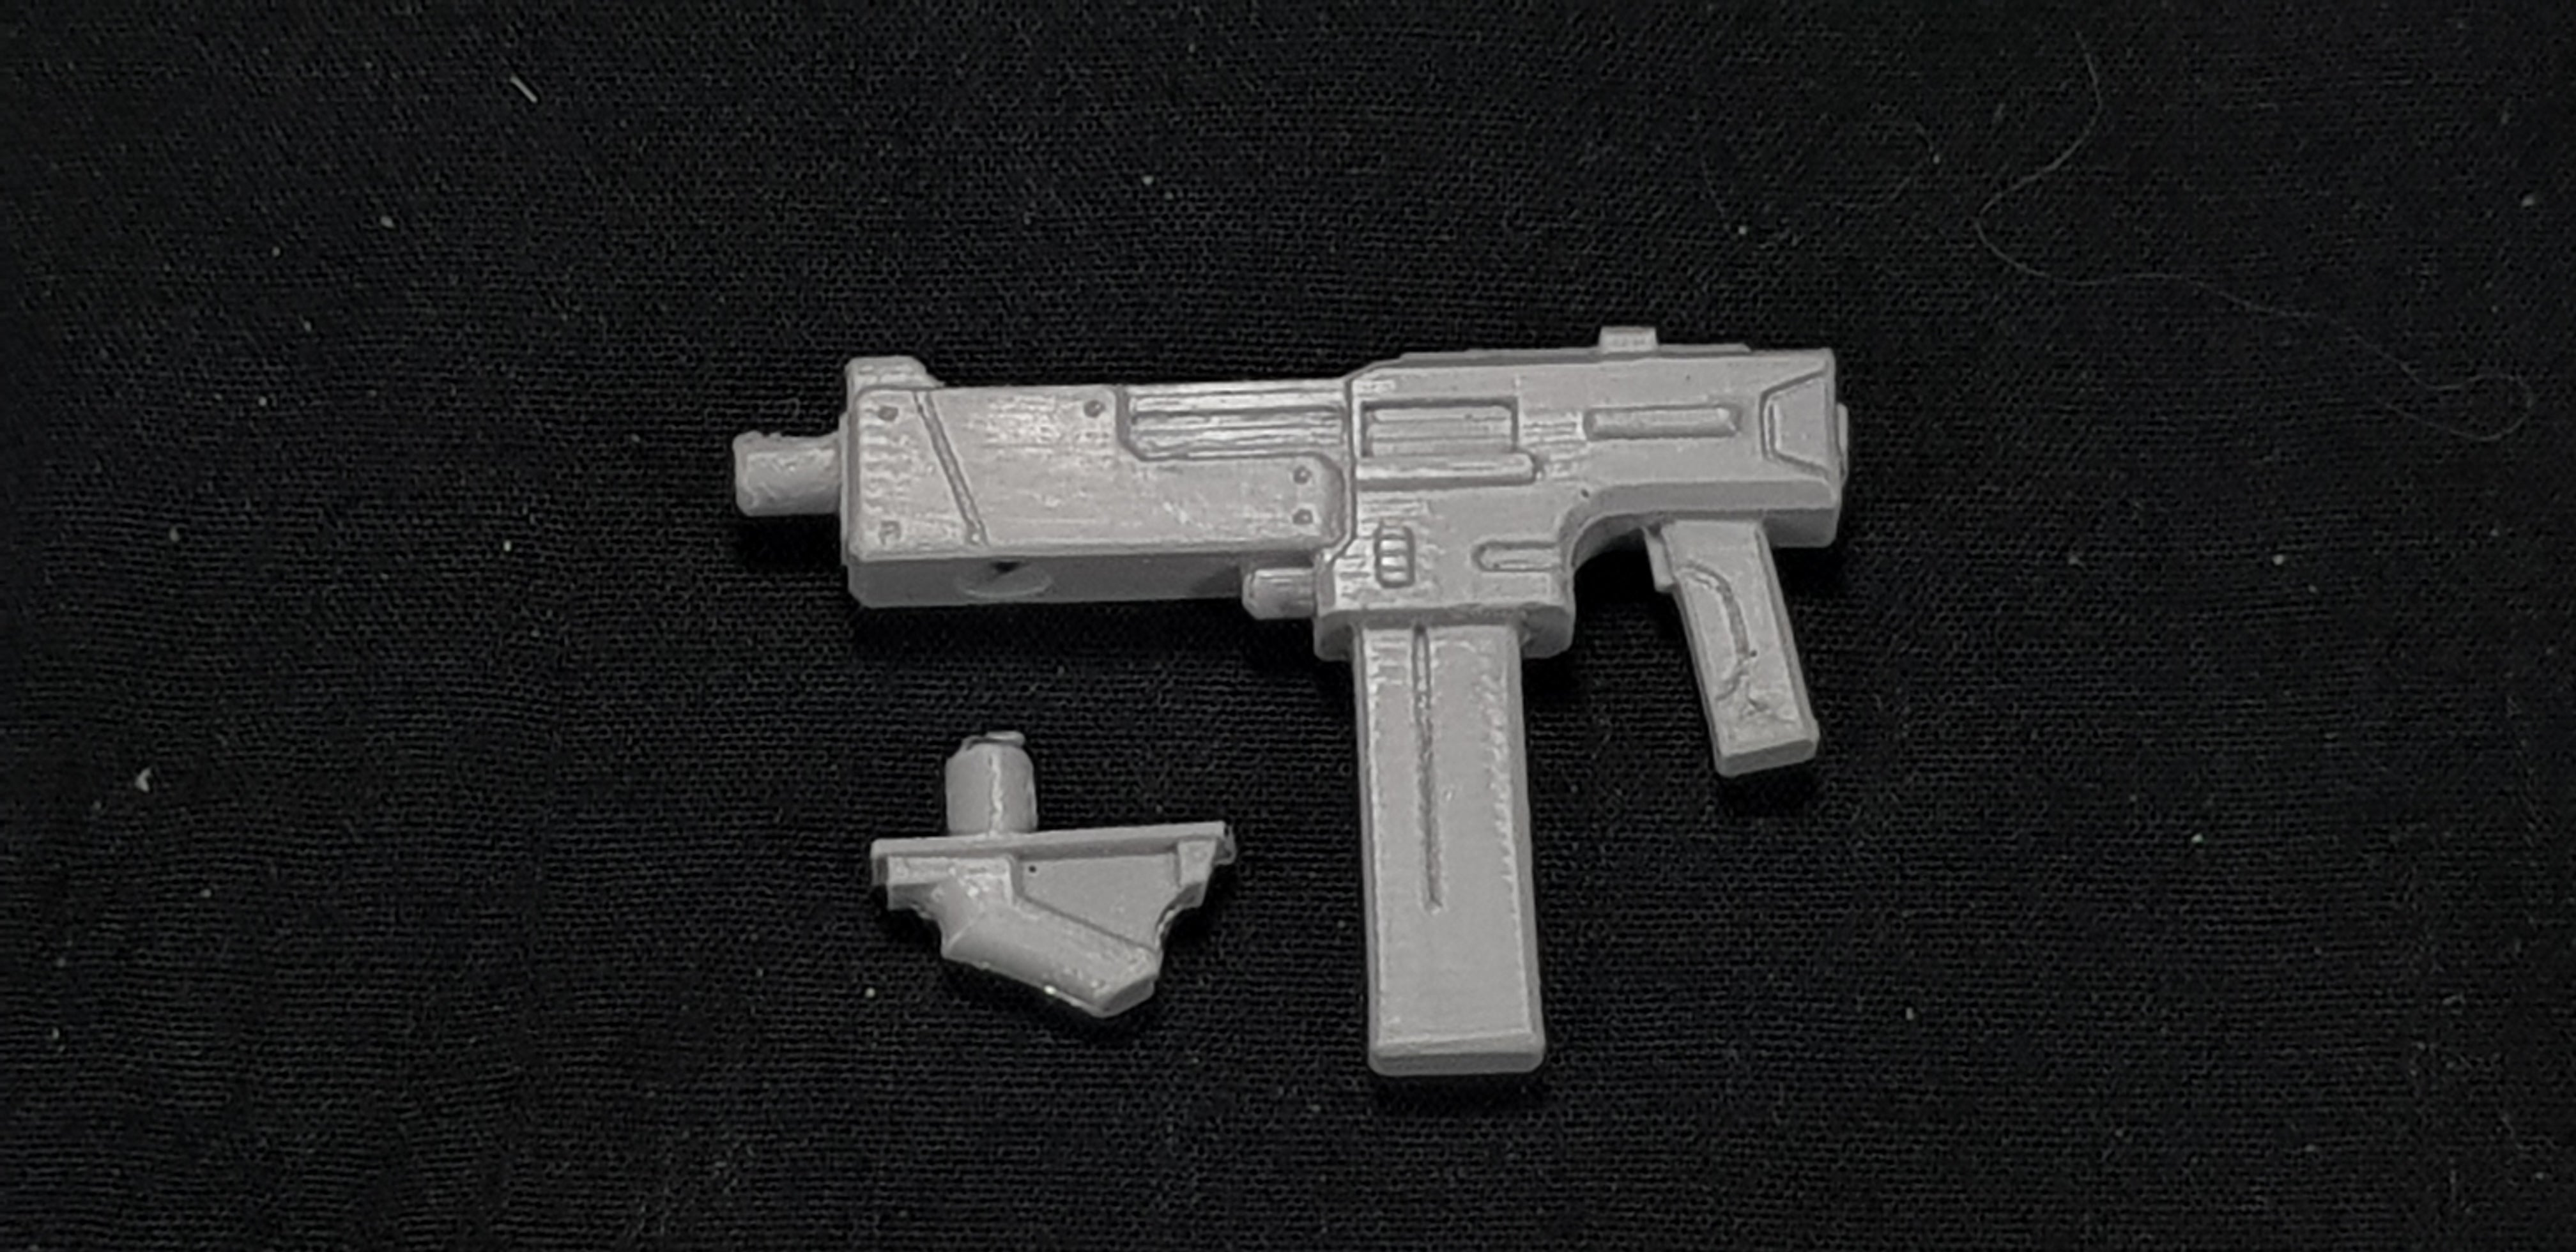 1/12 scale 'VECTRAL' Sub-machine gun